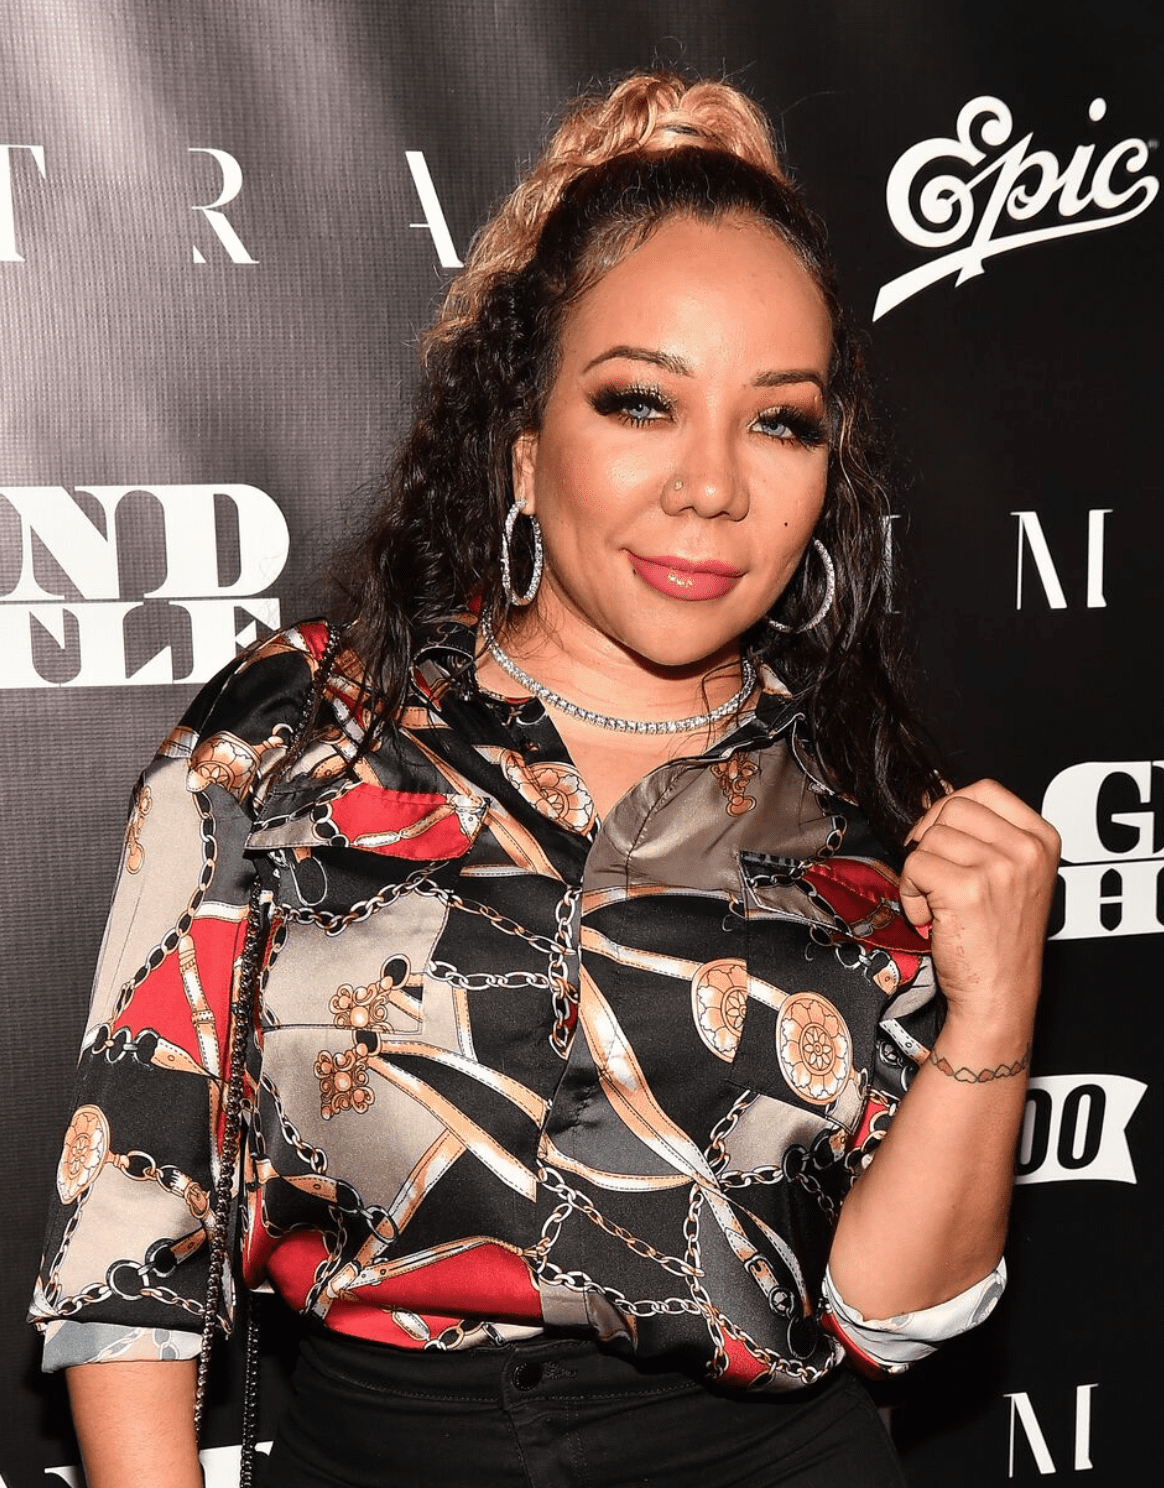 """Tameka """"Tiny"""" Harris attends T.I.'s """"Dime Trap"""" Private Album Release Party at The Trap Museum on October 4, 2018 in Atlanta, Georgia. 